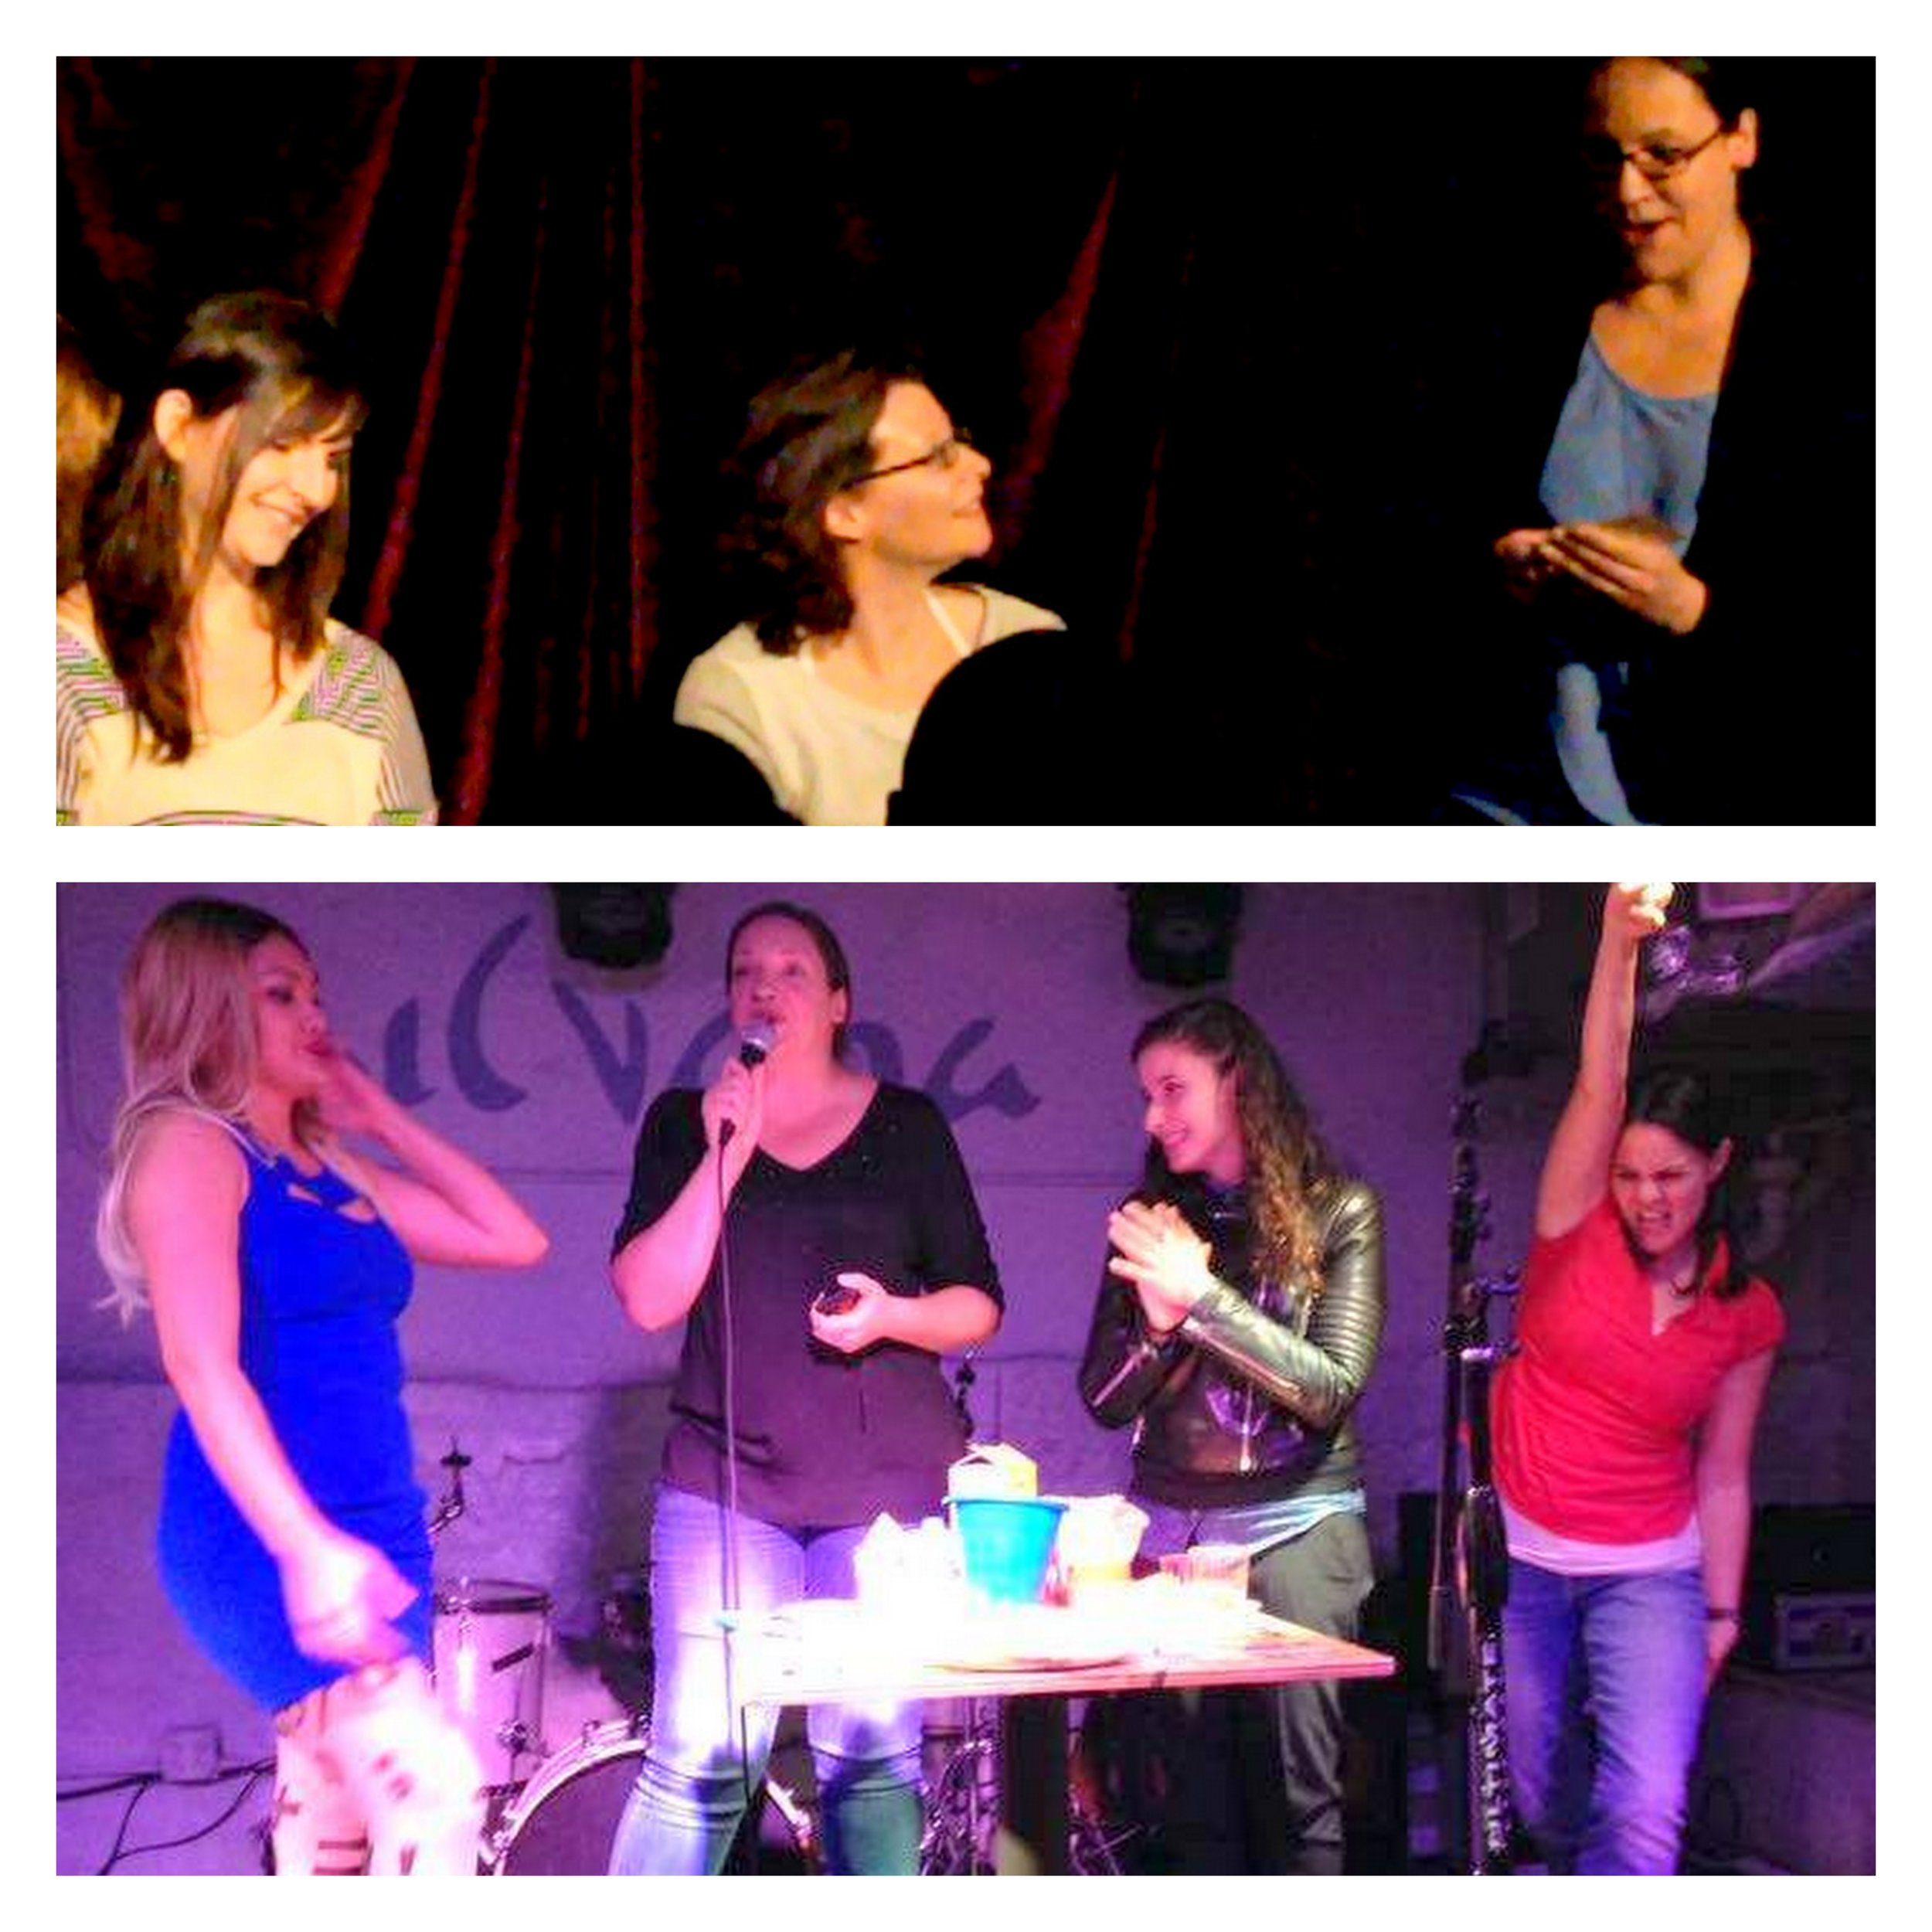 Top: photo from my first show at The West End Lounge, where I actually included interview segments for my guests. Turned out that was much more interesting to me than to my audience.  Bottom: My last mini-reboot of the show was only the cooking portion, but was high energy and a lot of fun. I now have a much better idea of how to make this show work and keep it fun and different for the whole hour!